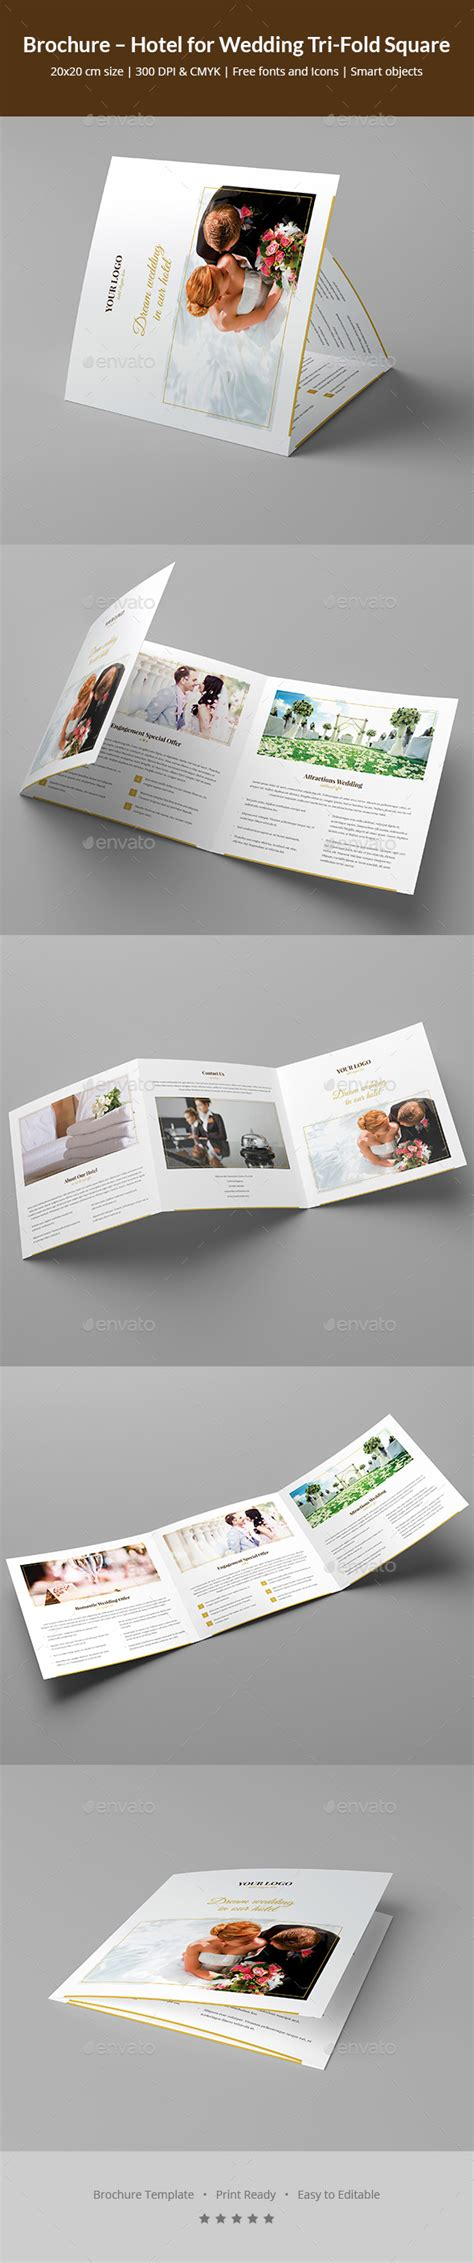 Wedding Brochure Hotel by Brochure Hotel For Wedding Tri Fold Square By Artbart